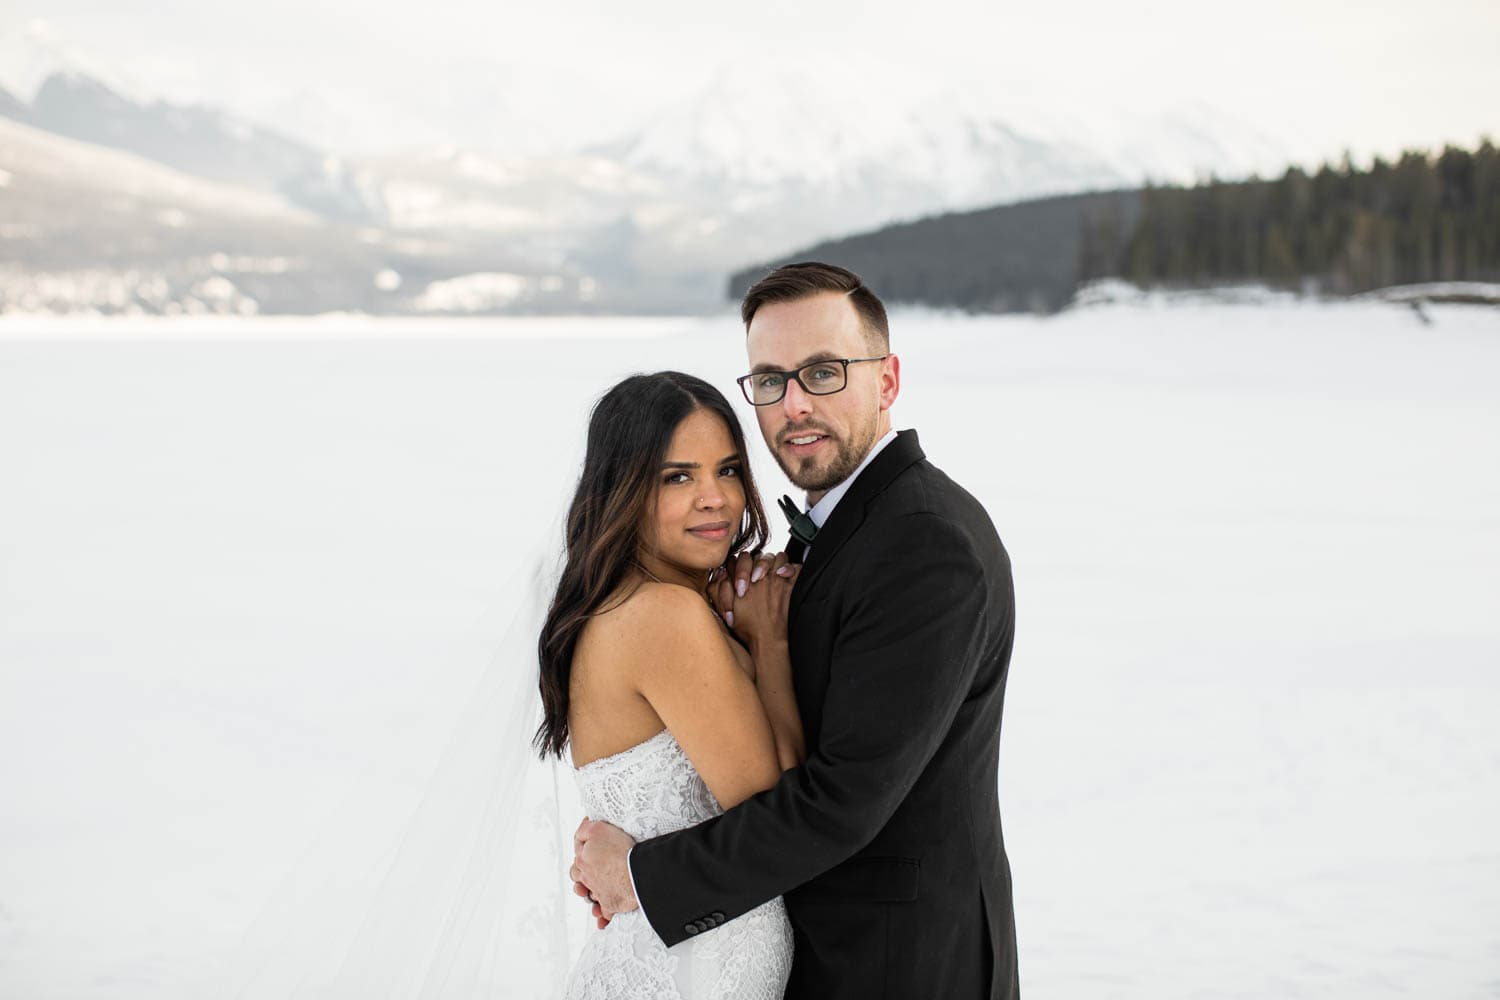 bride and groom in winter mountains